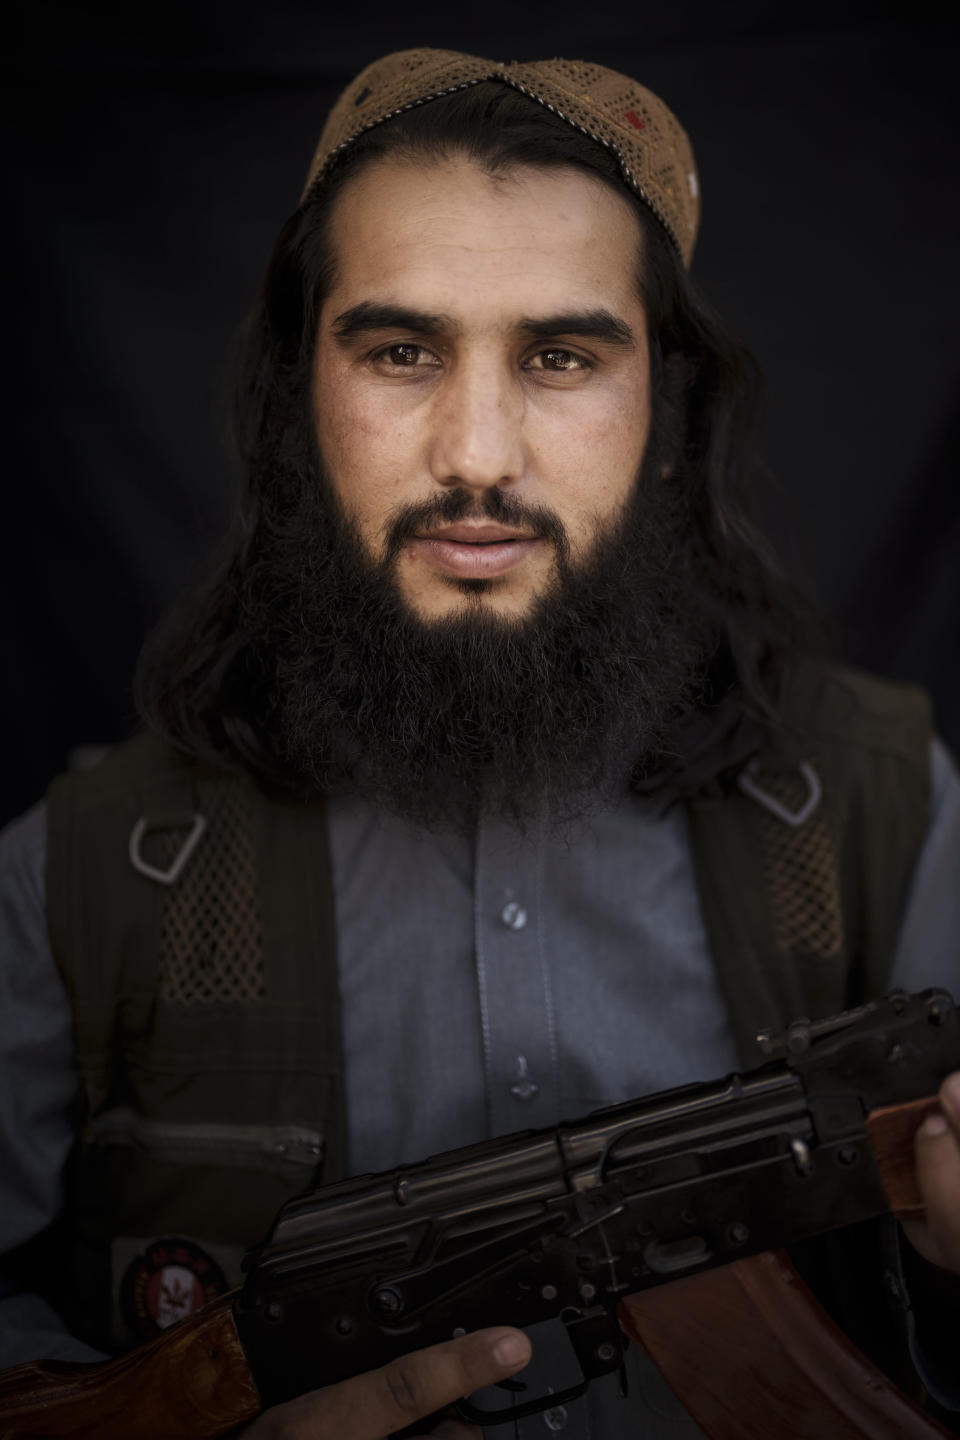 Taliban fighter Harris Al-Baghlani, 26, poses for a photo at a police station in Kabul, Afghanistan, Thursday, Sept. 16, 2021. Al-Baghlani studied religion, politics and is a trained sniper. He has been a Taliban since he was 14 years old. (AP Photo/Felipe Dana)